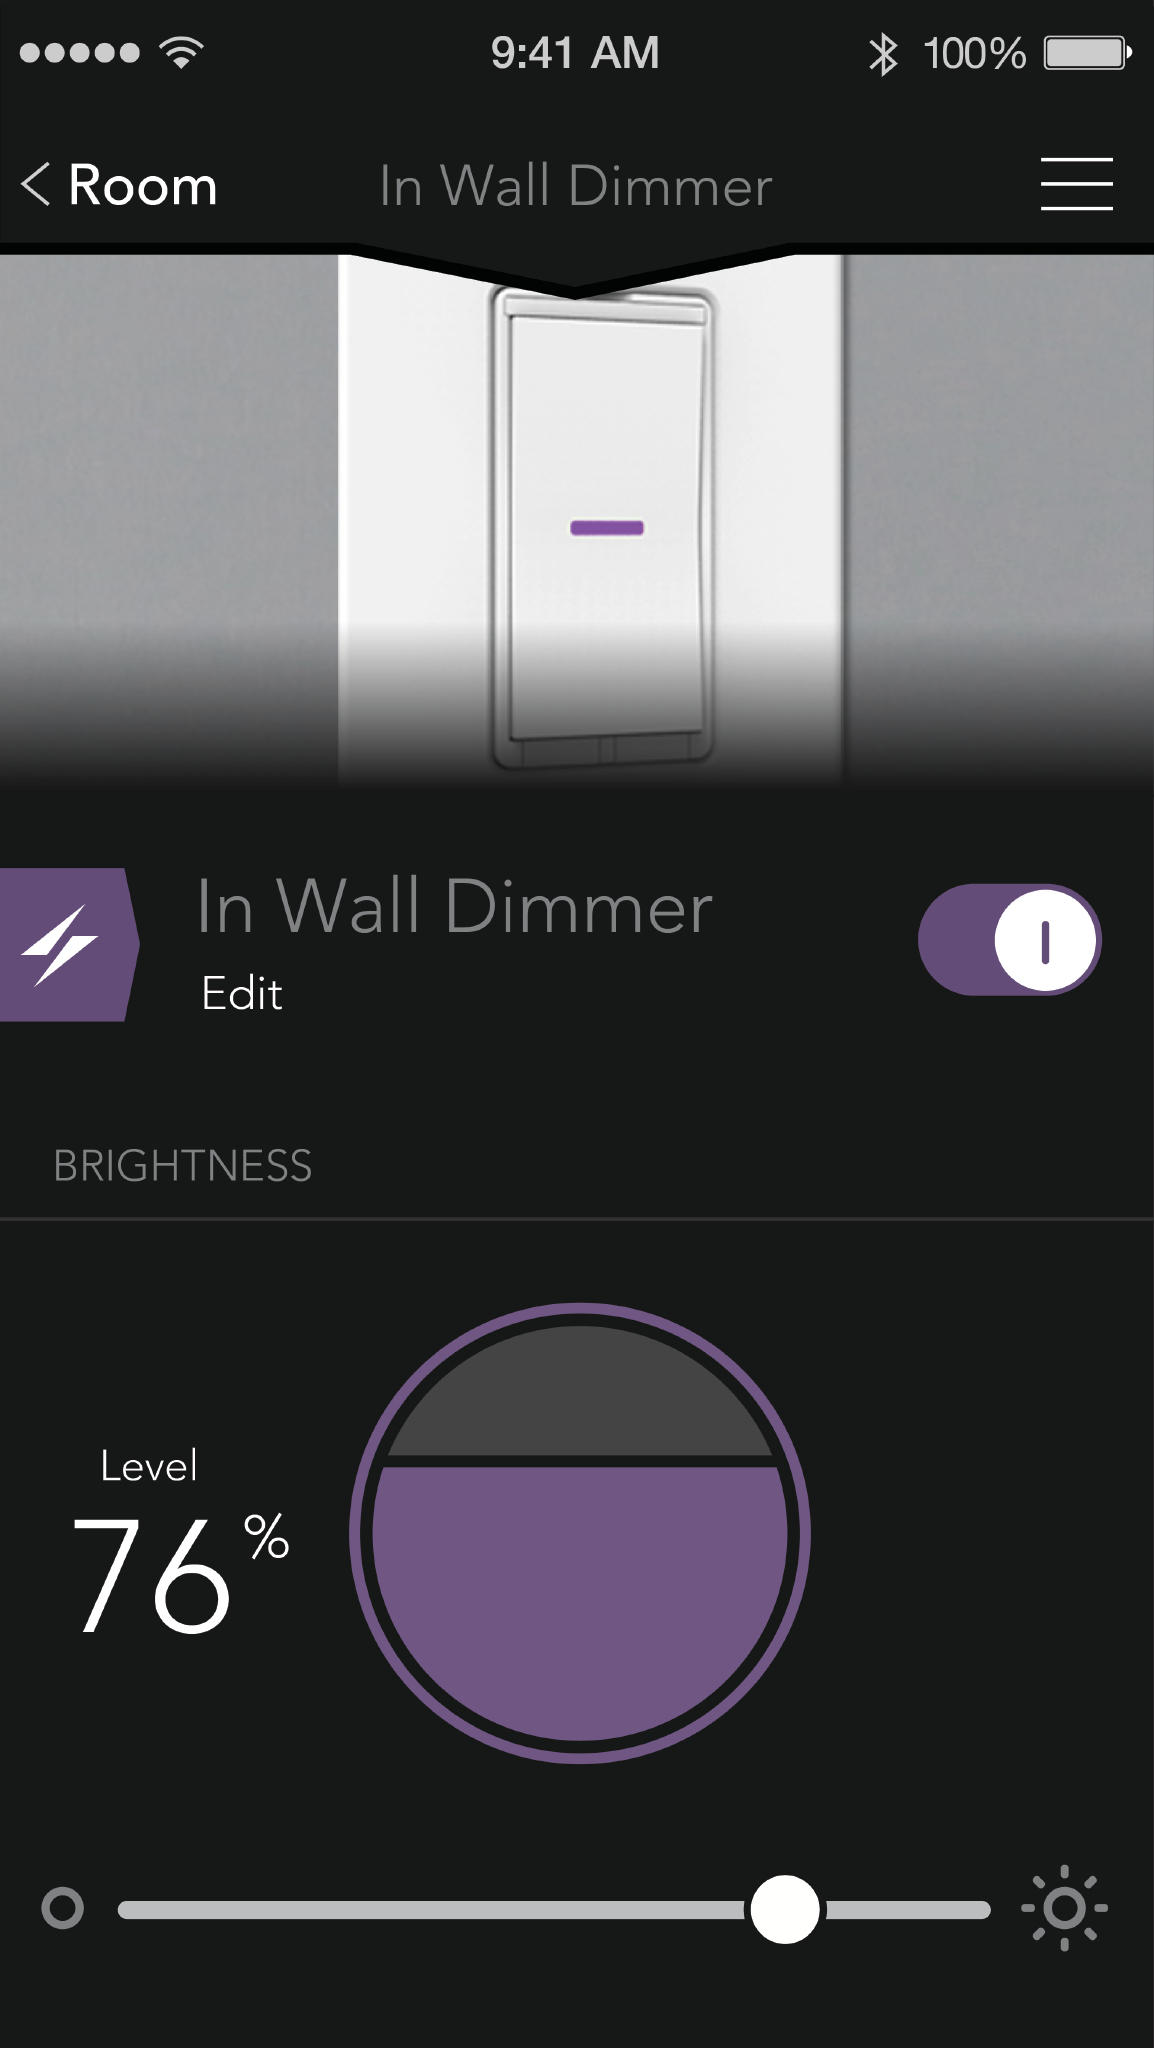 idevices-dimmer-switch-app